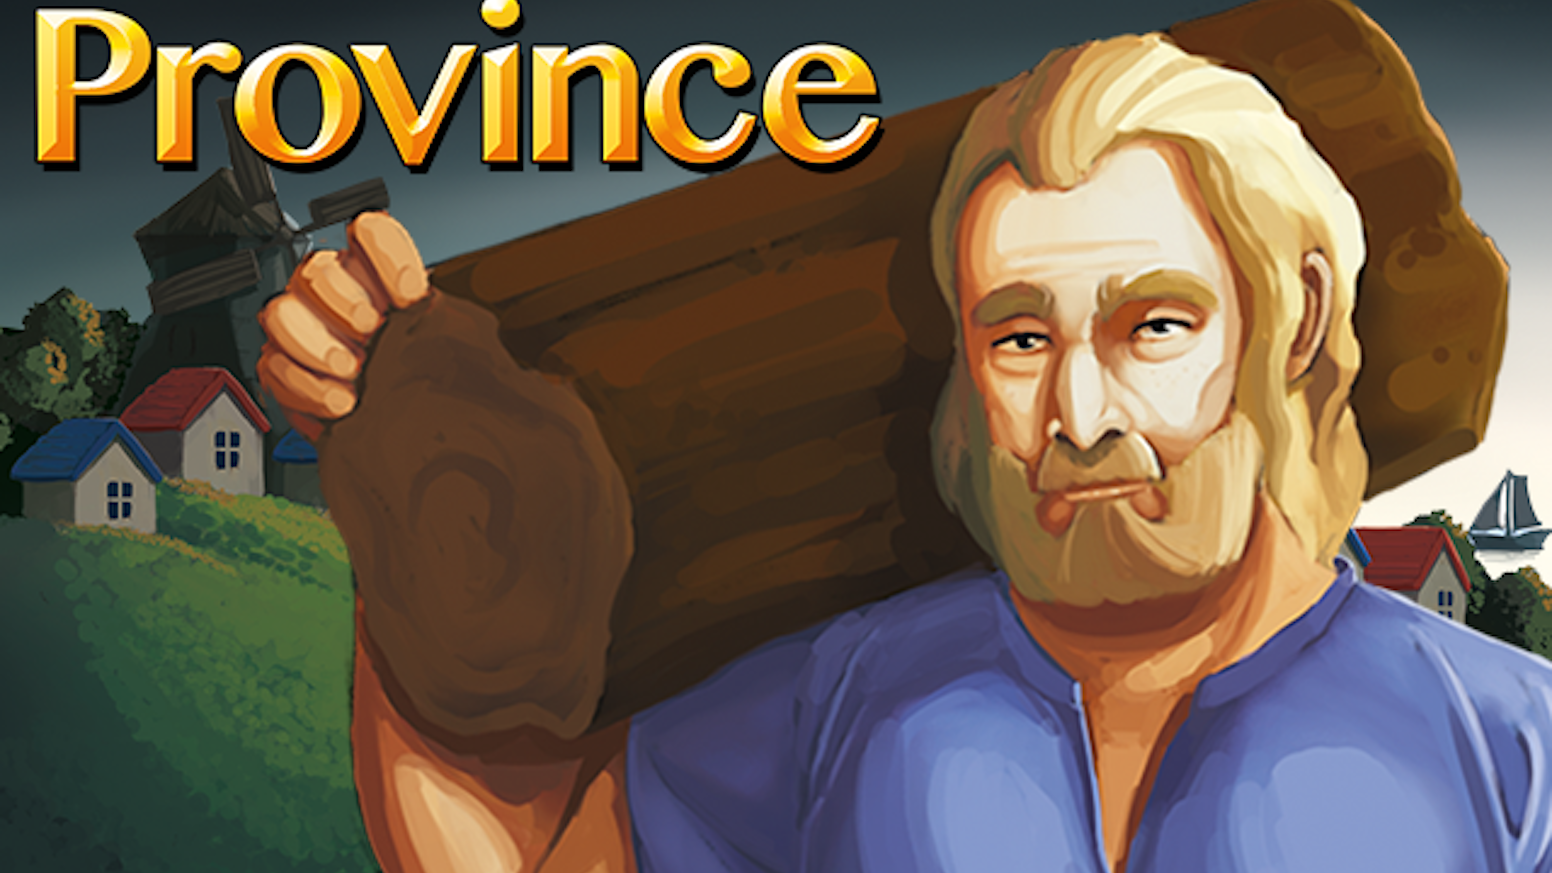 Province is an quick-to-learn eurogame that you can fit in your pocket! Play it between games or make a night of it!